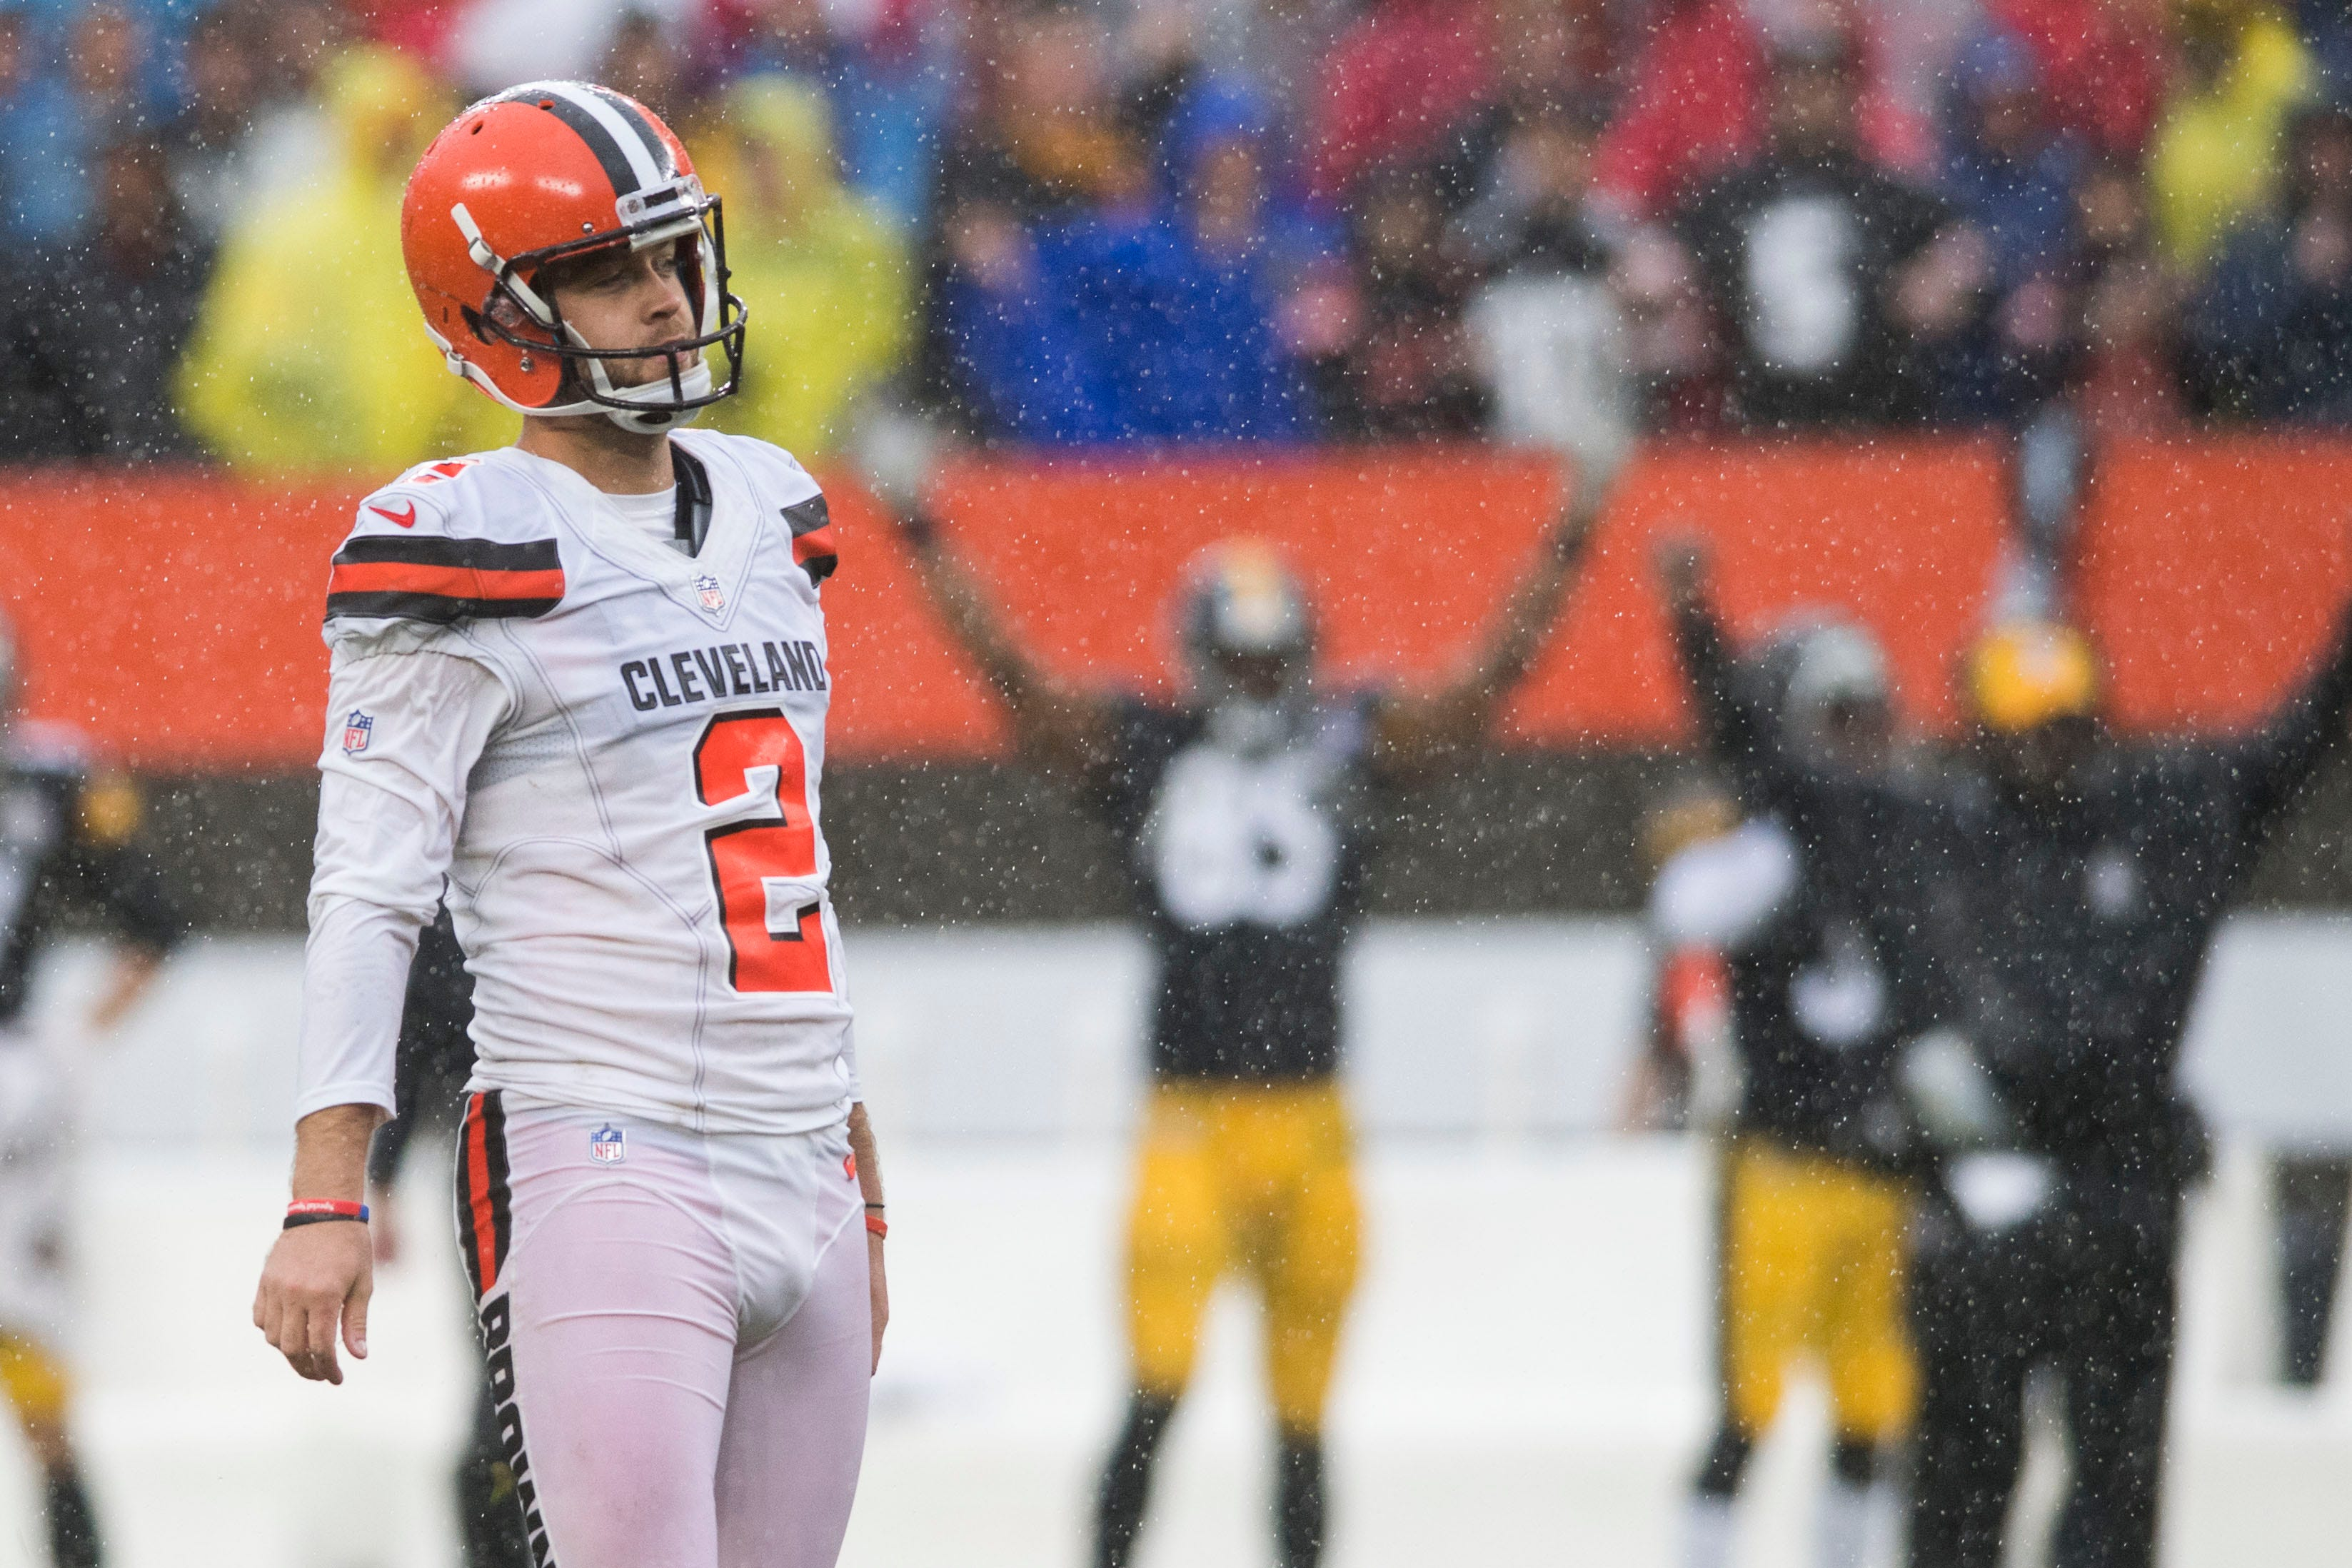 Browns aren't satisfied with tie, but stalemate with Steelers is sign of progress